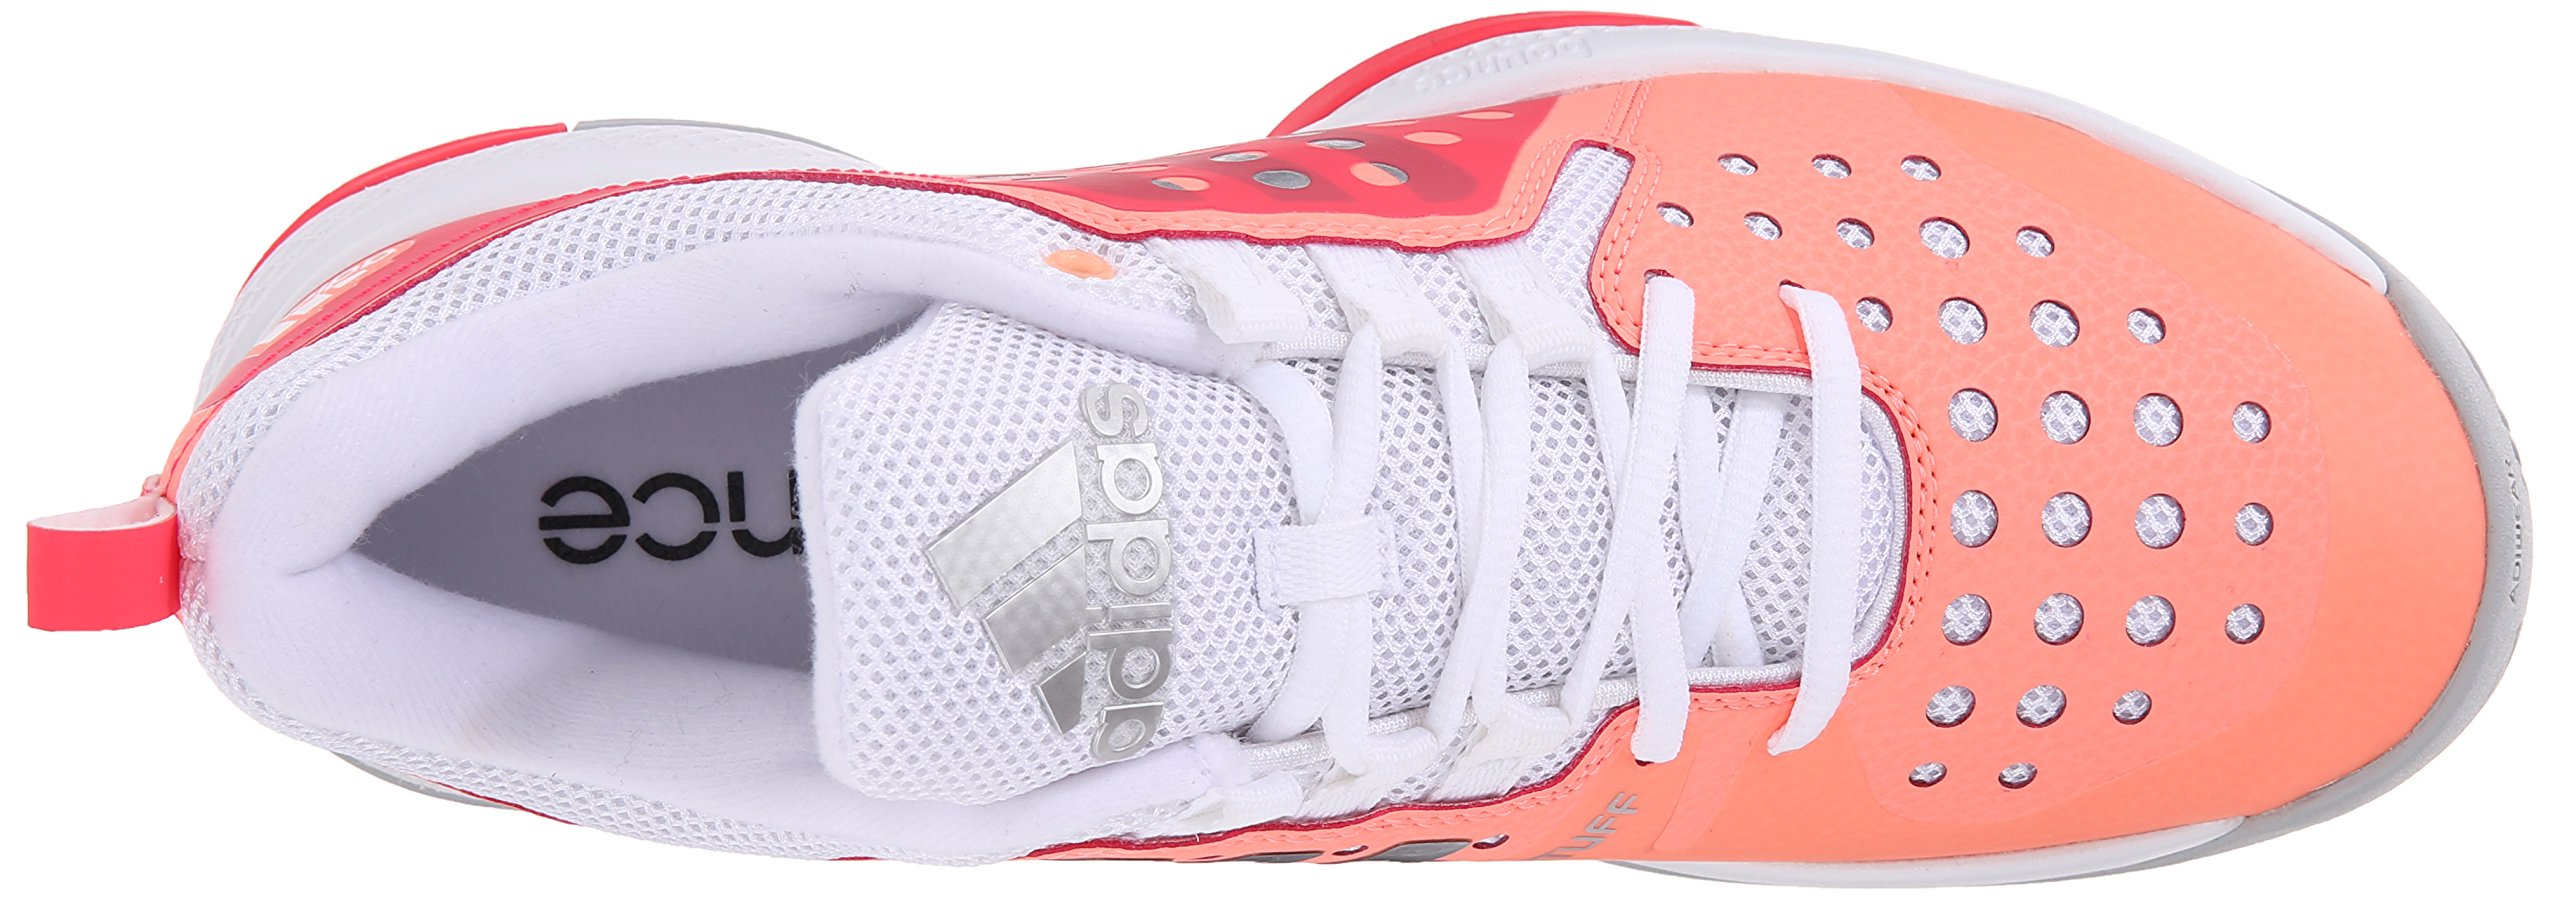 adidas Performance Women's Barricade Classic Bounce W Training Footwear,Sun Glow Yellow/Metallic Silver/Shock Red,9.5 M US by adidas (Image #8)